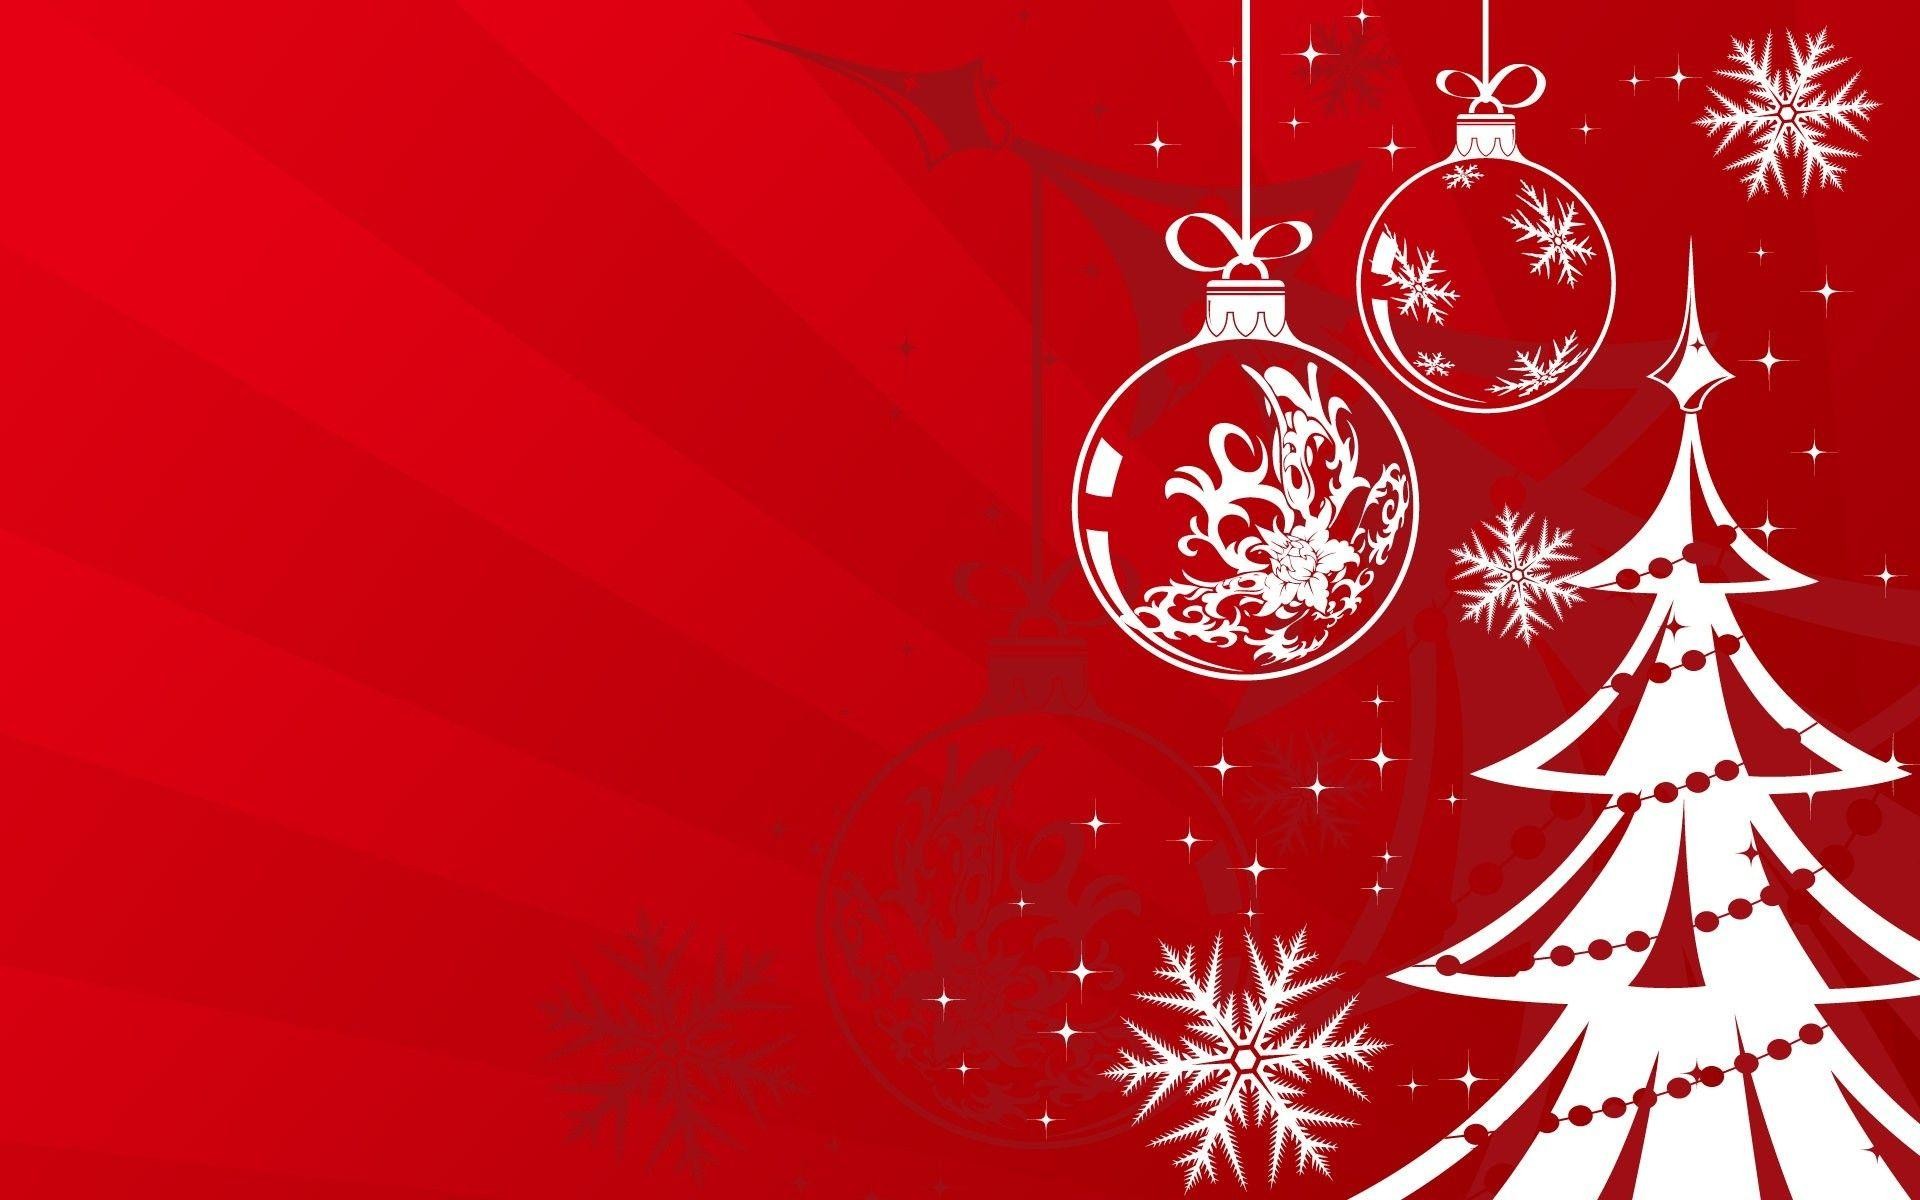 Christmas Backgrounds For Photoshop · Christmas Backgrounds